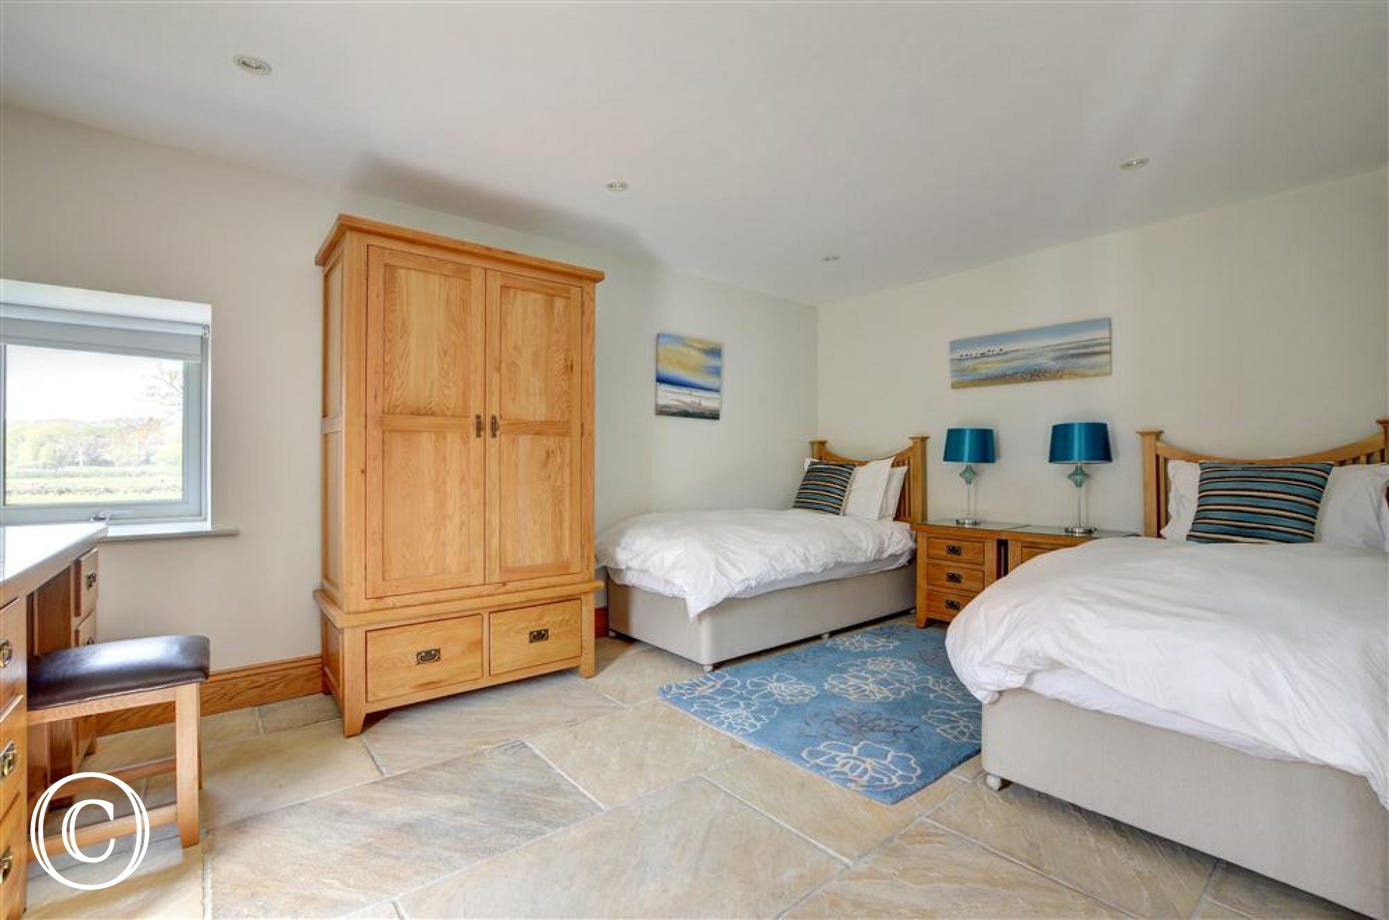 Bedroom 1 has twin beds, is on the ground floor and is suitable for wheelchairs.